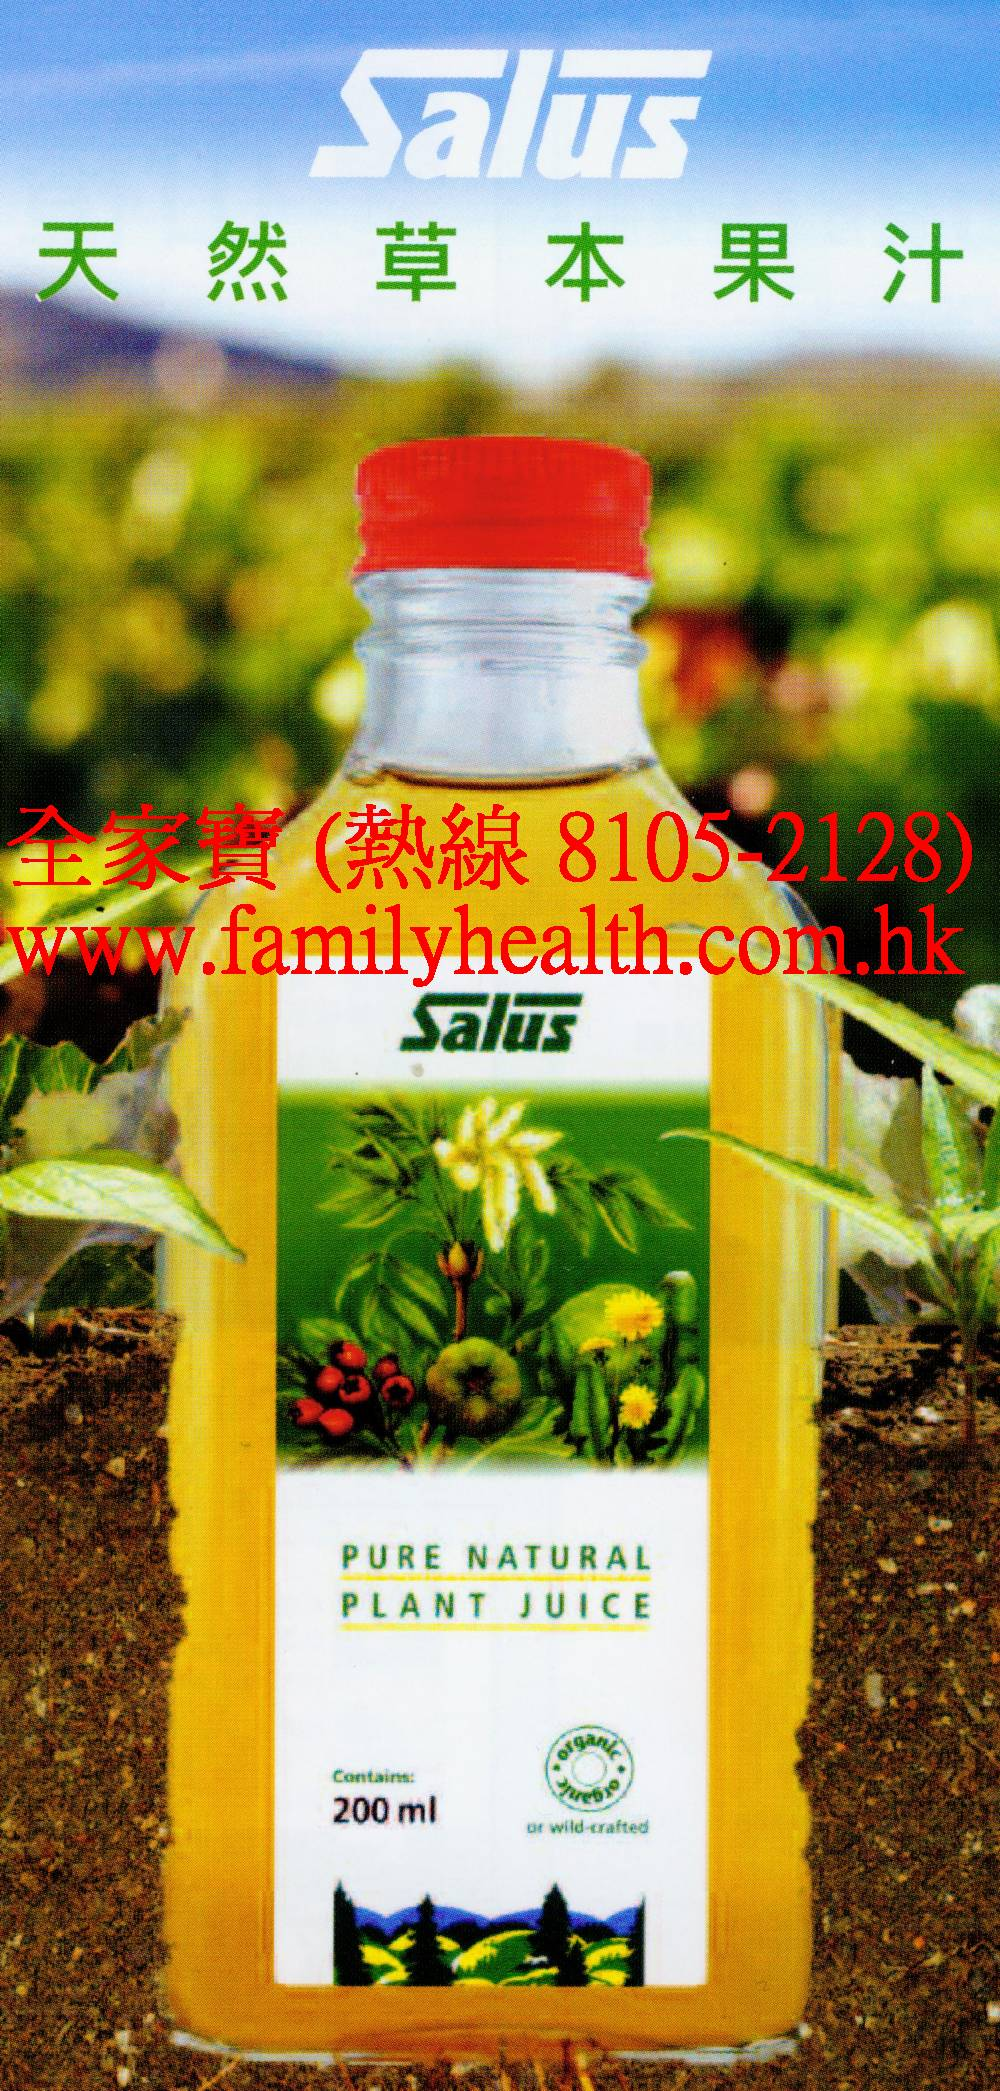 http://www.familyhealth.com.hk/files/full/224_1.jpg